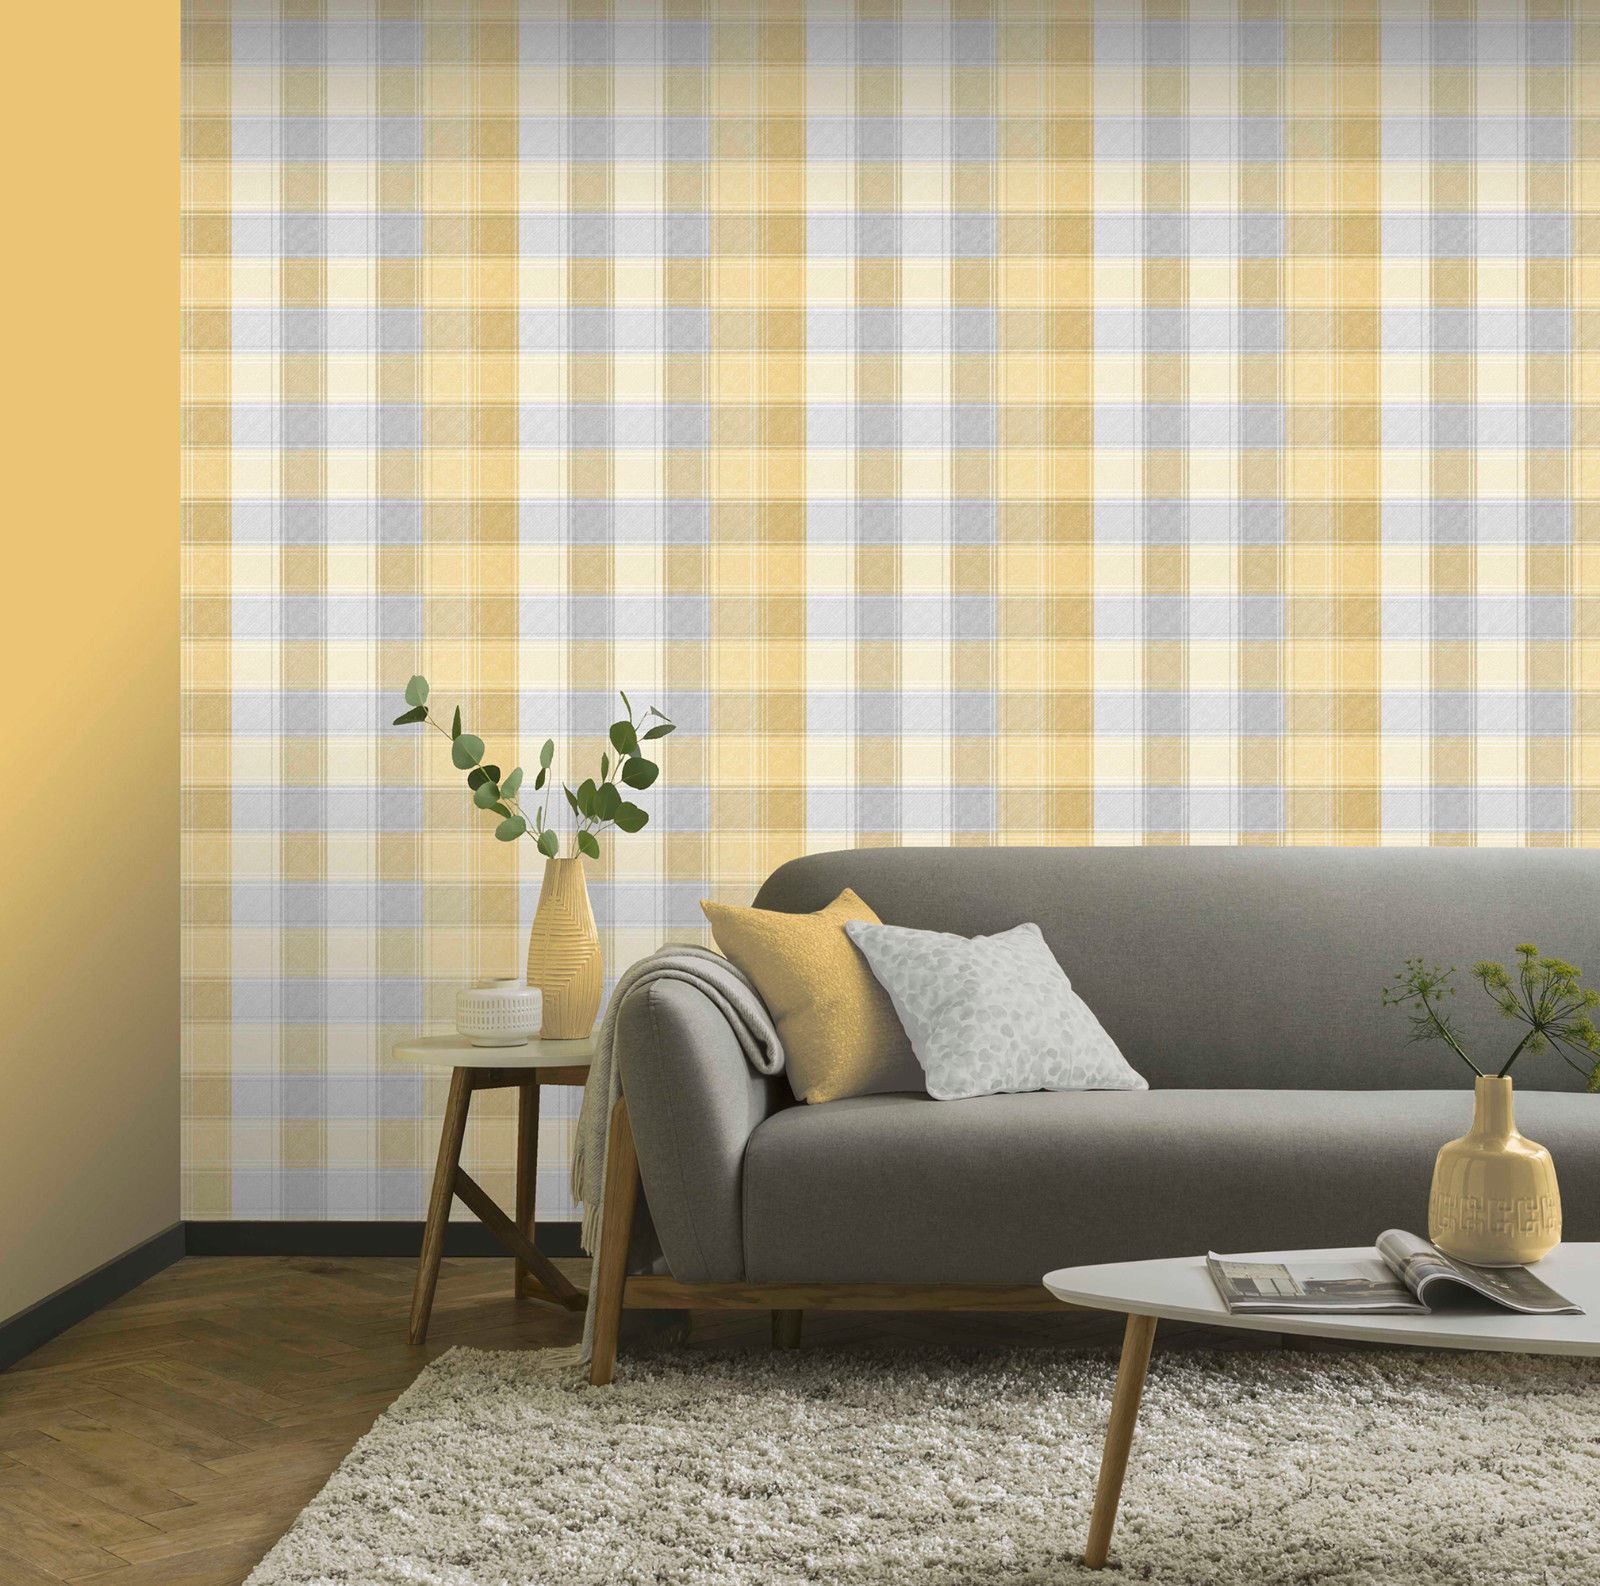 Checked-Tartan-Wallpaper-Textured-Glitter-Country-Check-Modern-Collection thumbnail 25